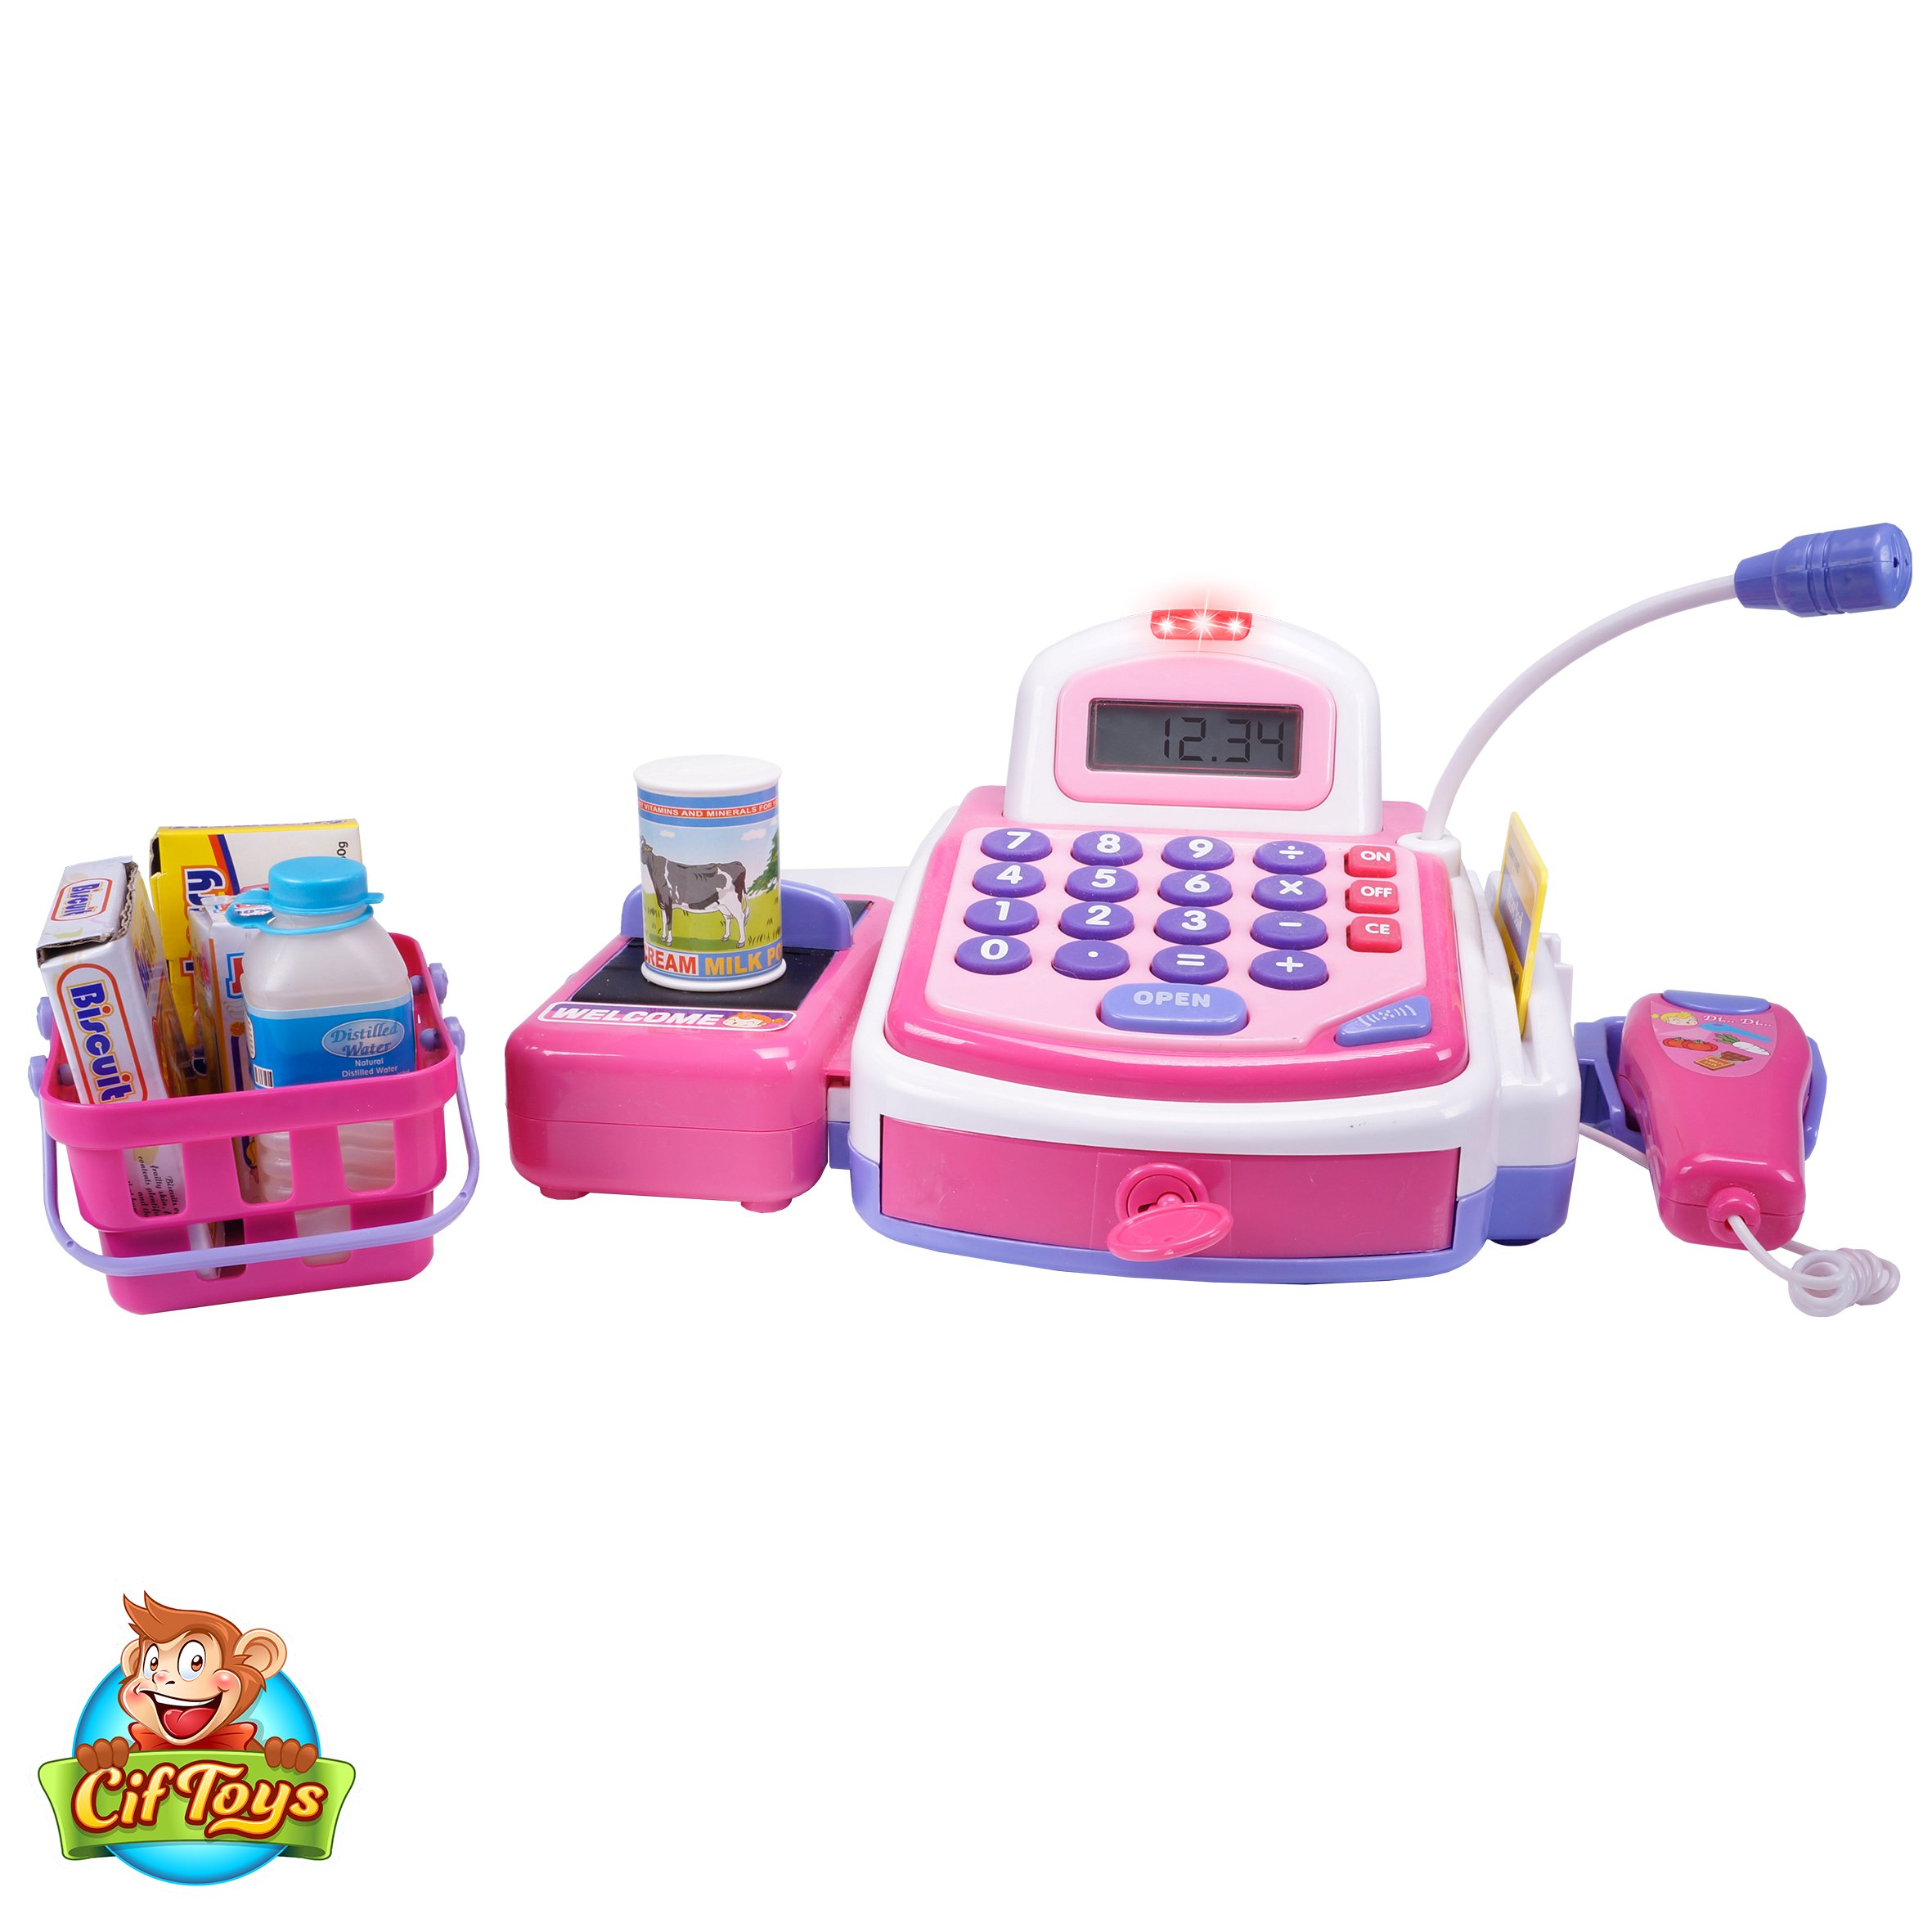 CifToys Cashier Toy Cash Register Playset | Pretend Play Set for Kids | Colorful Children's Supermarket Checkout Toy with Microphone & Sounds | Ideal Gift for Toddlers & Pre-Schoolers by CifToys (Image #8)